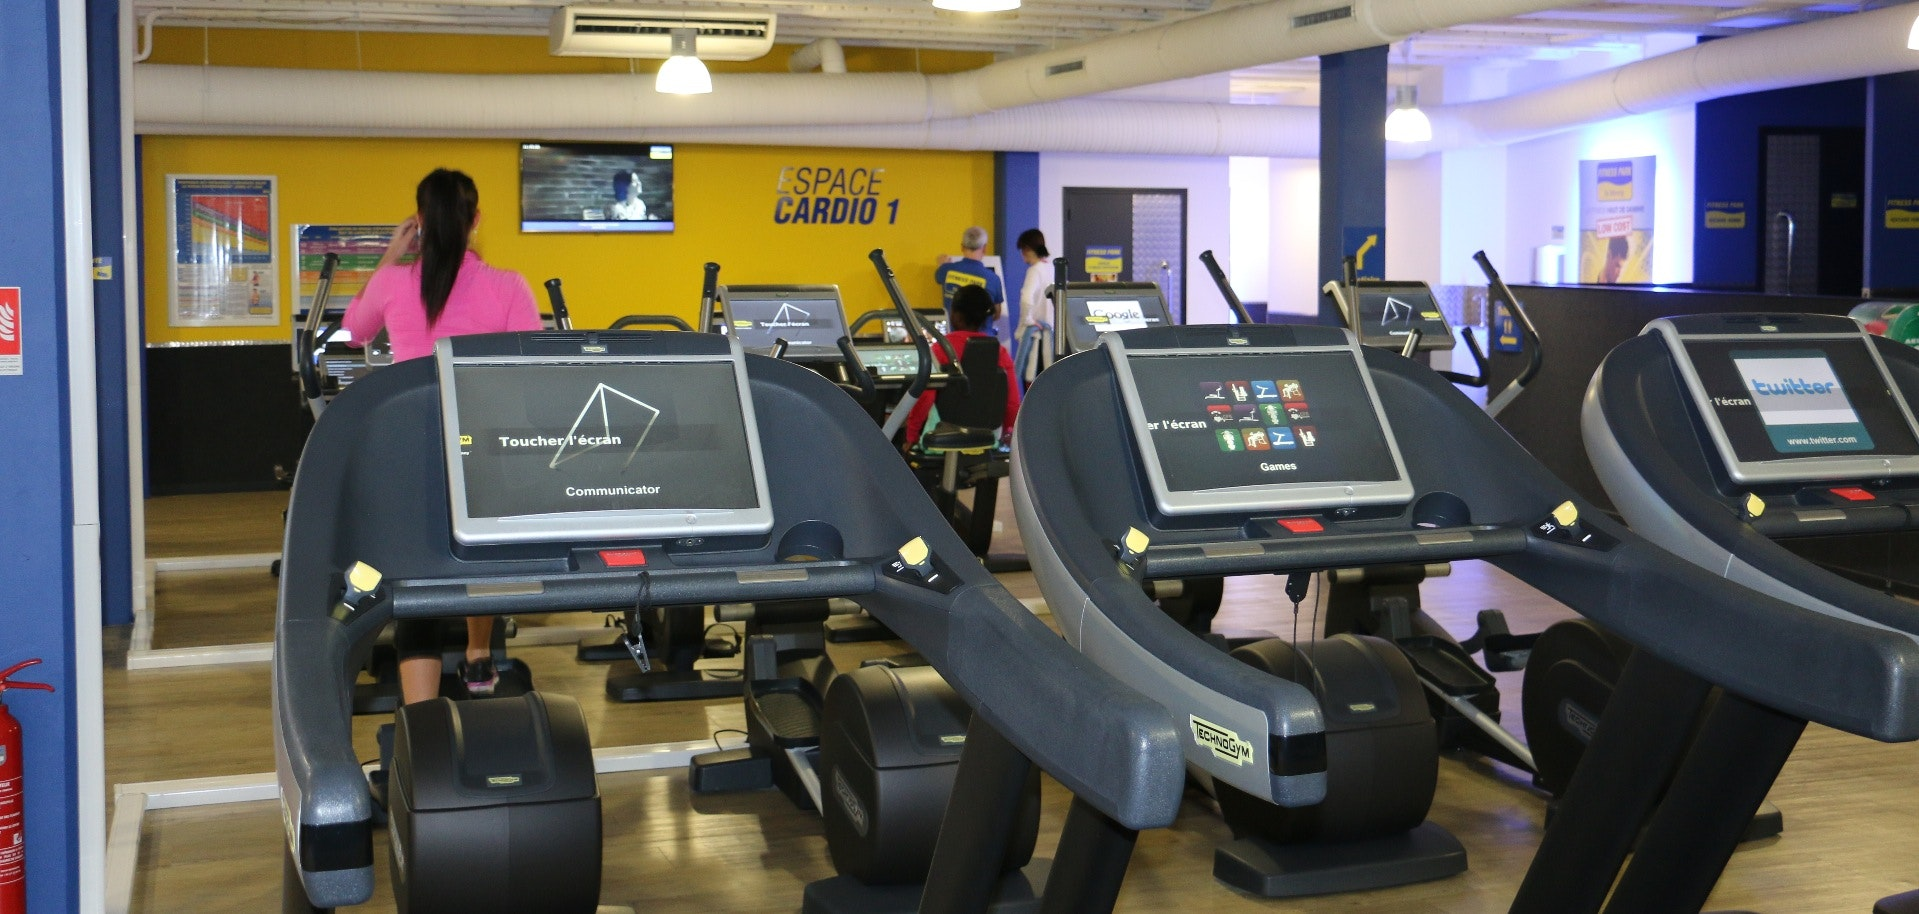 Fitness Park Bagneux Cachan